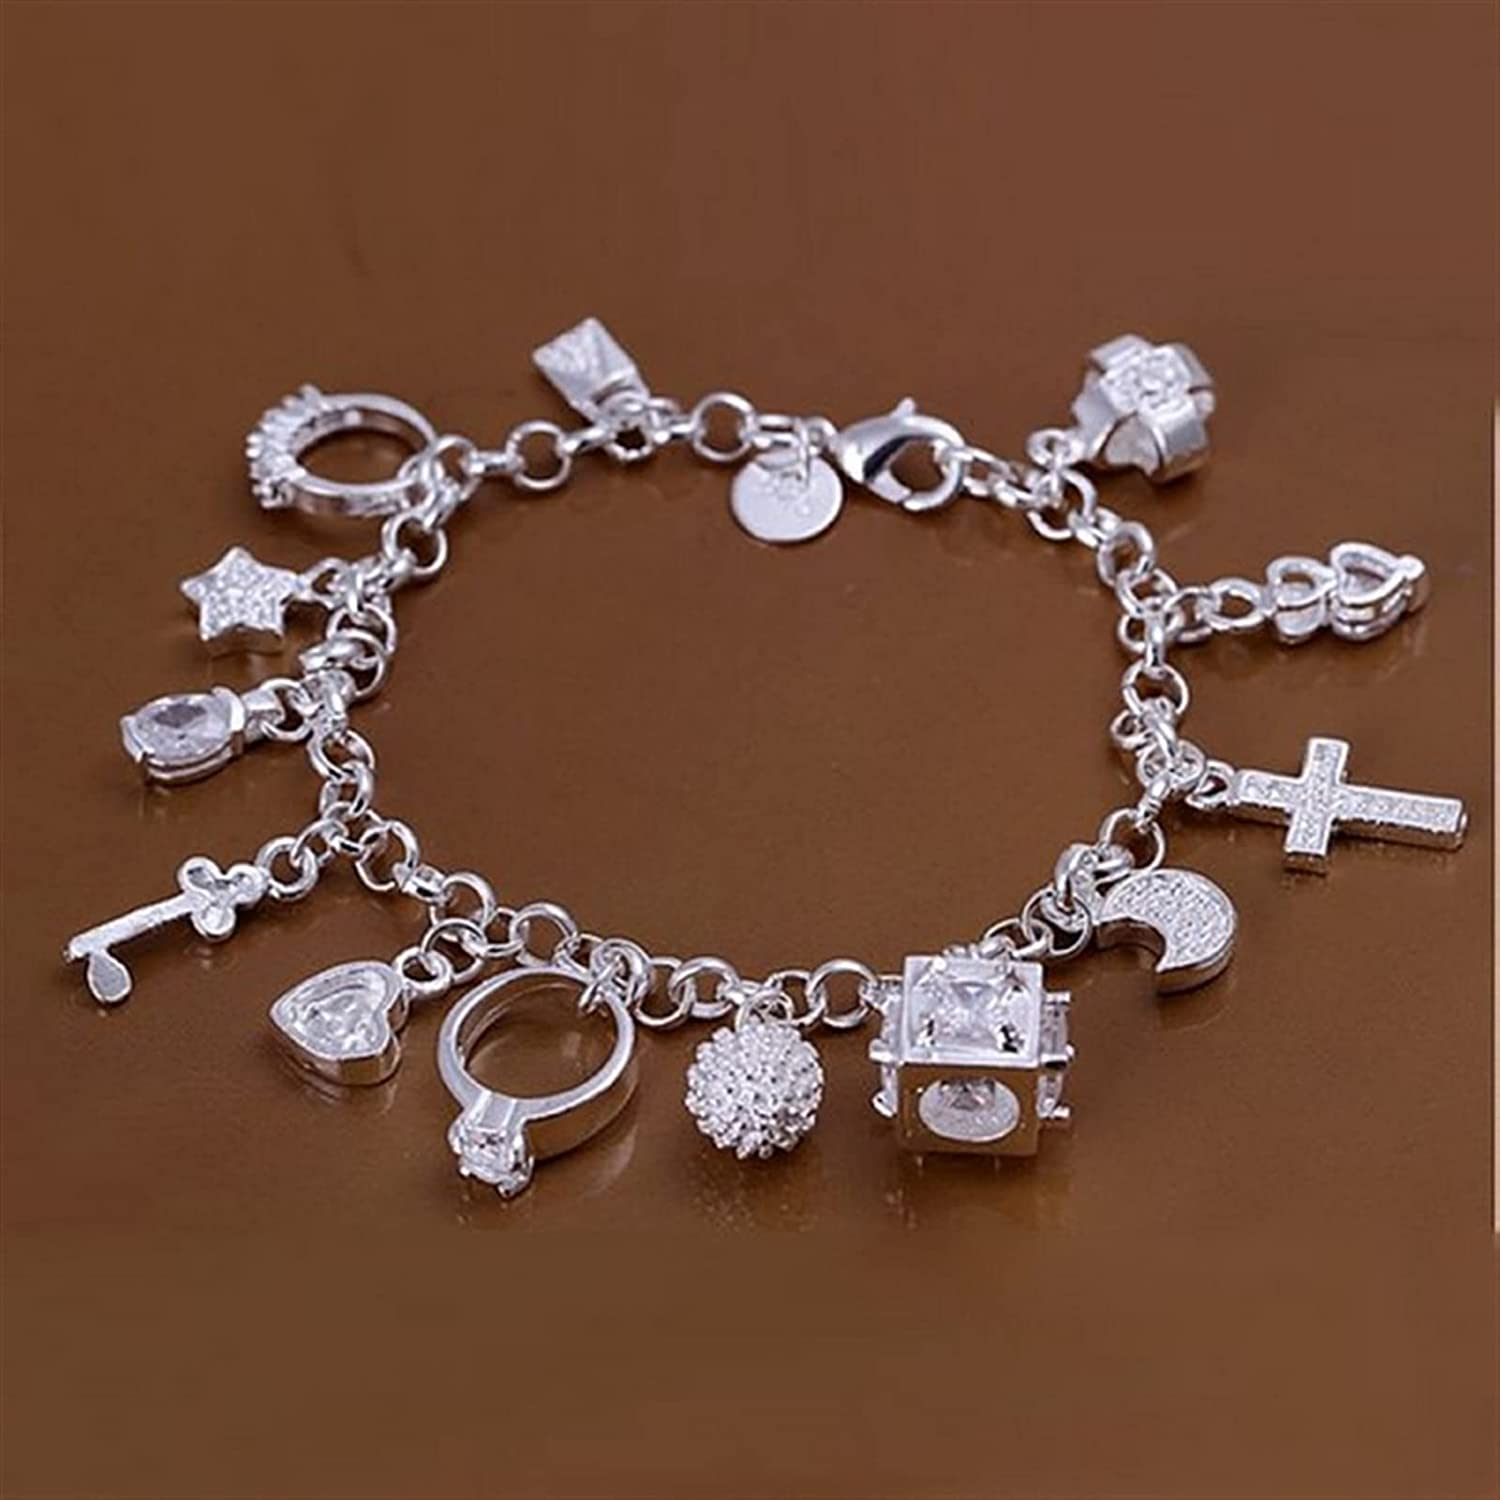 JIANCHEN Charm Sterling Silver Jewelry Cute Max 80% OFF Fashion Wo Bracelets Outlet sale feature